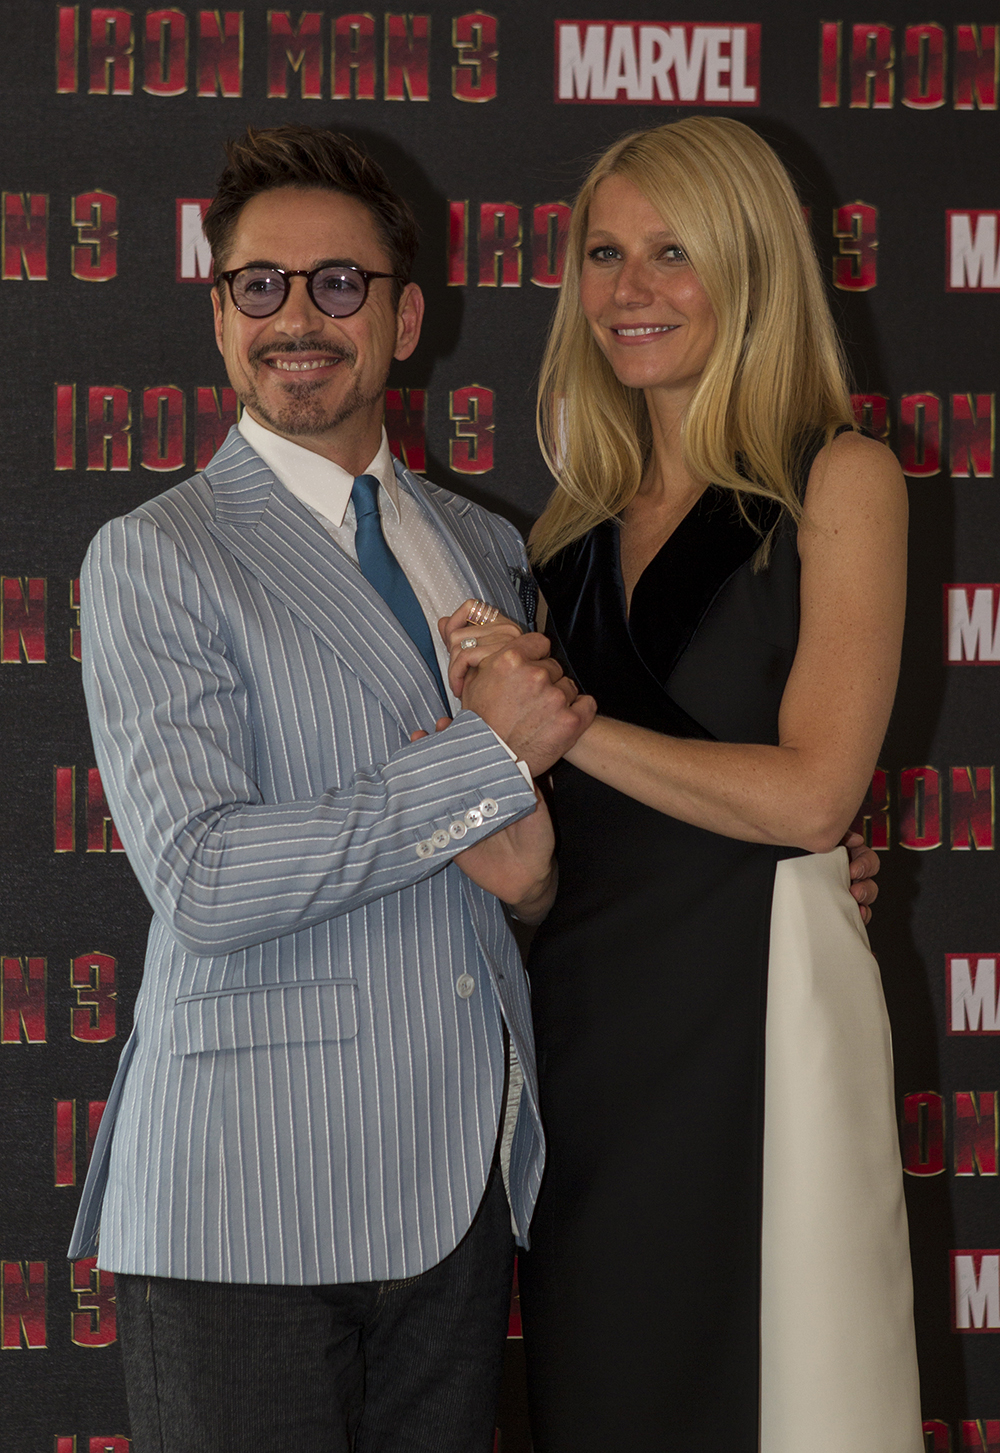 Iron Man 3 Press Conference and Photocall